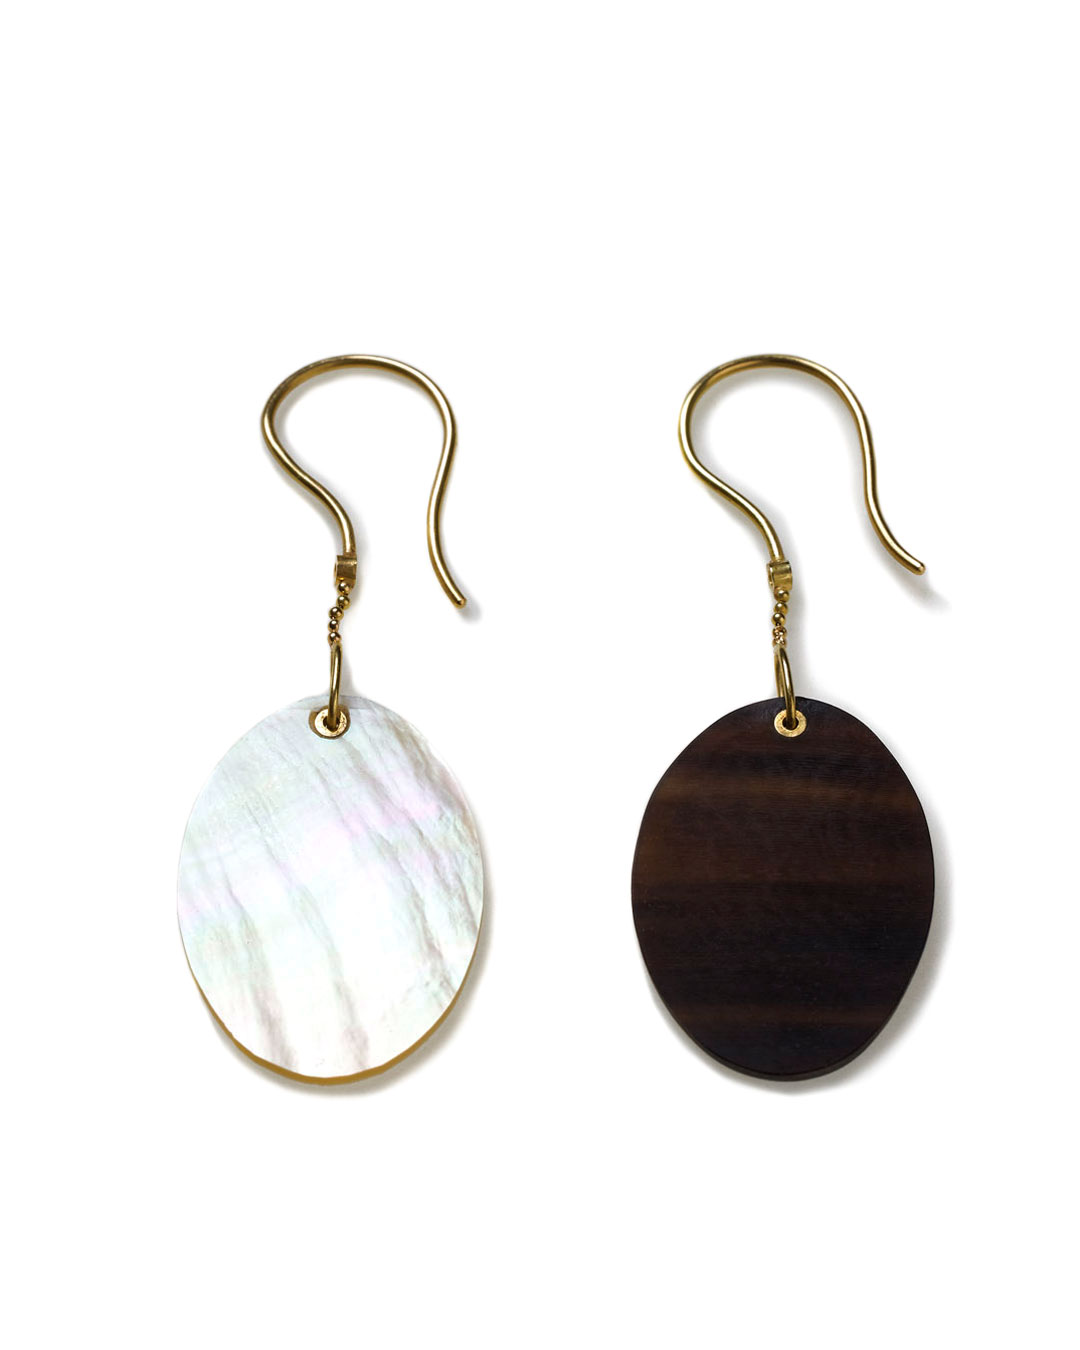 Julie Mollenhauer, untitled, 2016, earrings; mother-of-pearl, buffalo horn, 18ct gold, 20 x 15 x 2 mm, €710